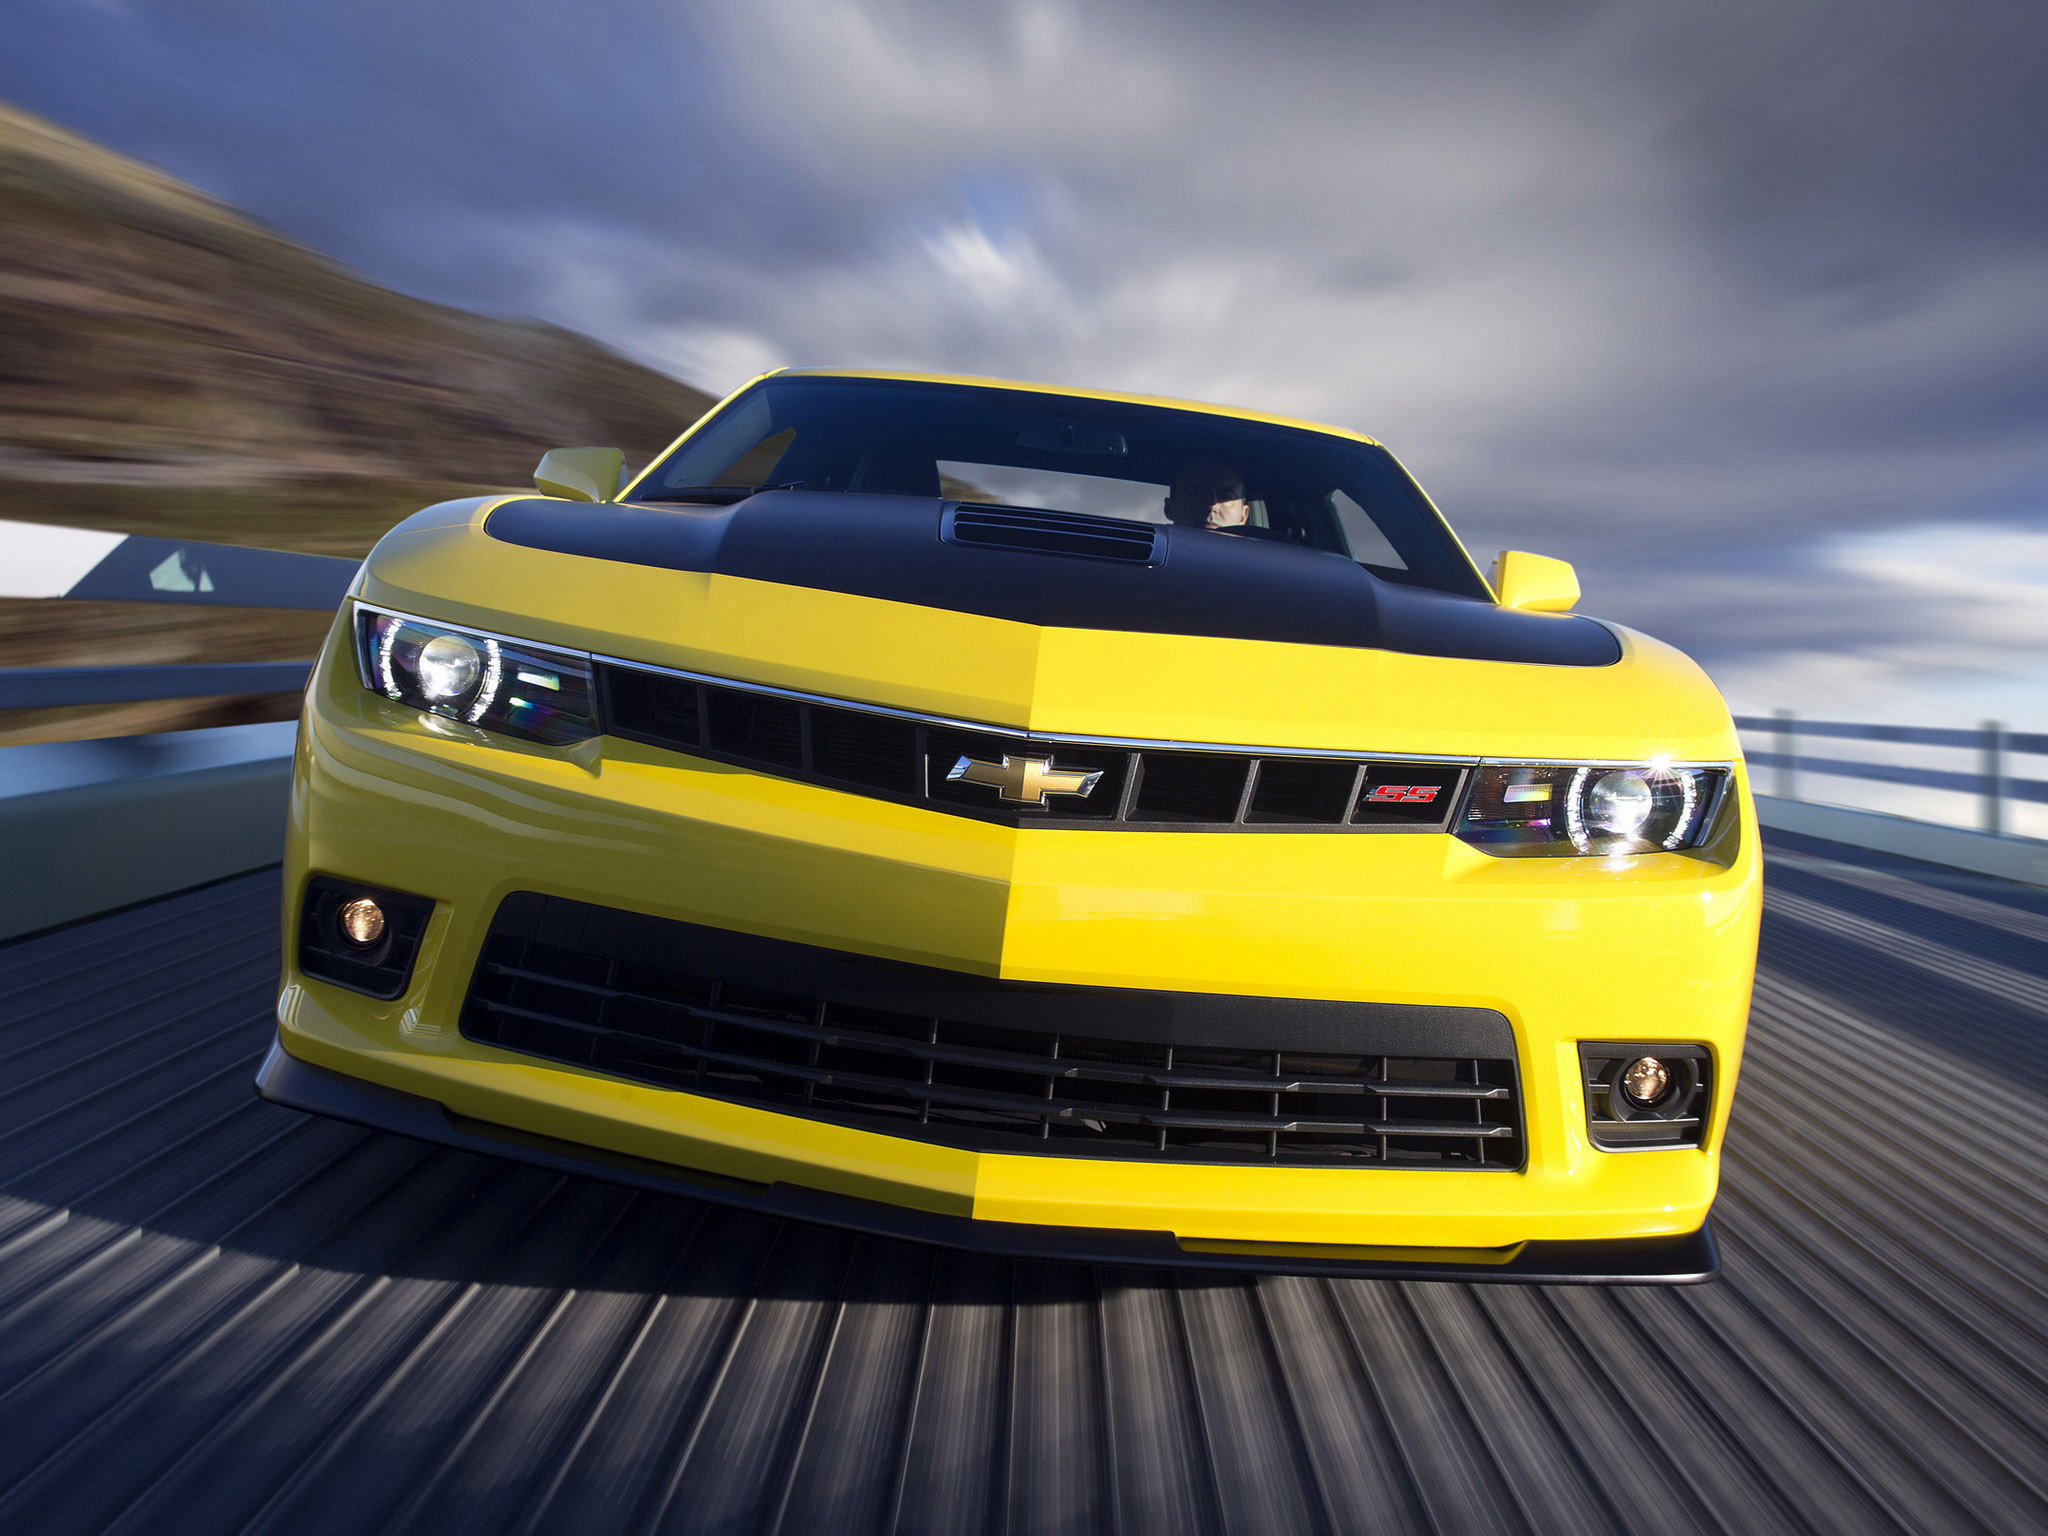 2048x1536 Chevrolet Camaro Wallpapers Desktop #h2672594, 0.39 Mb